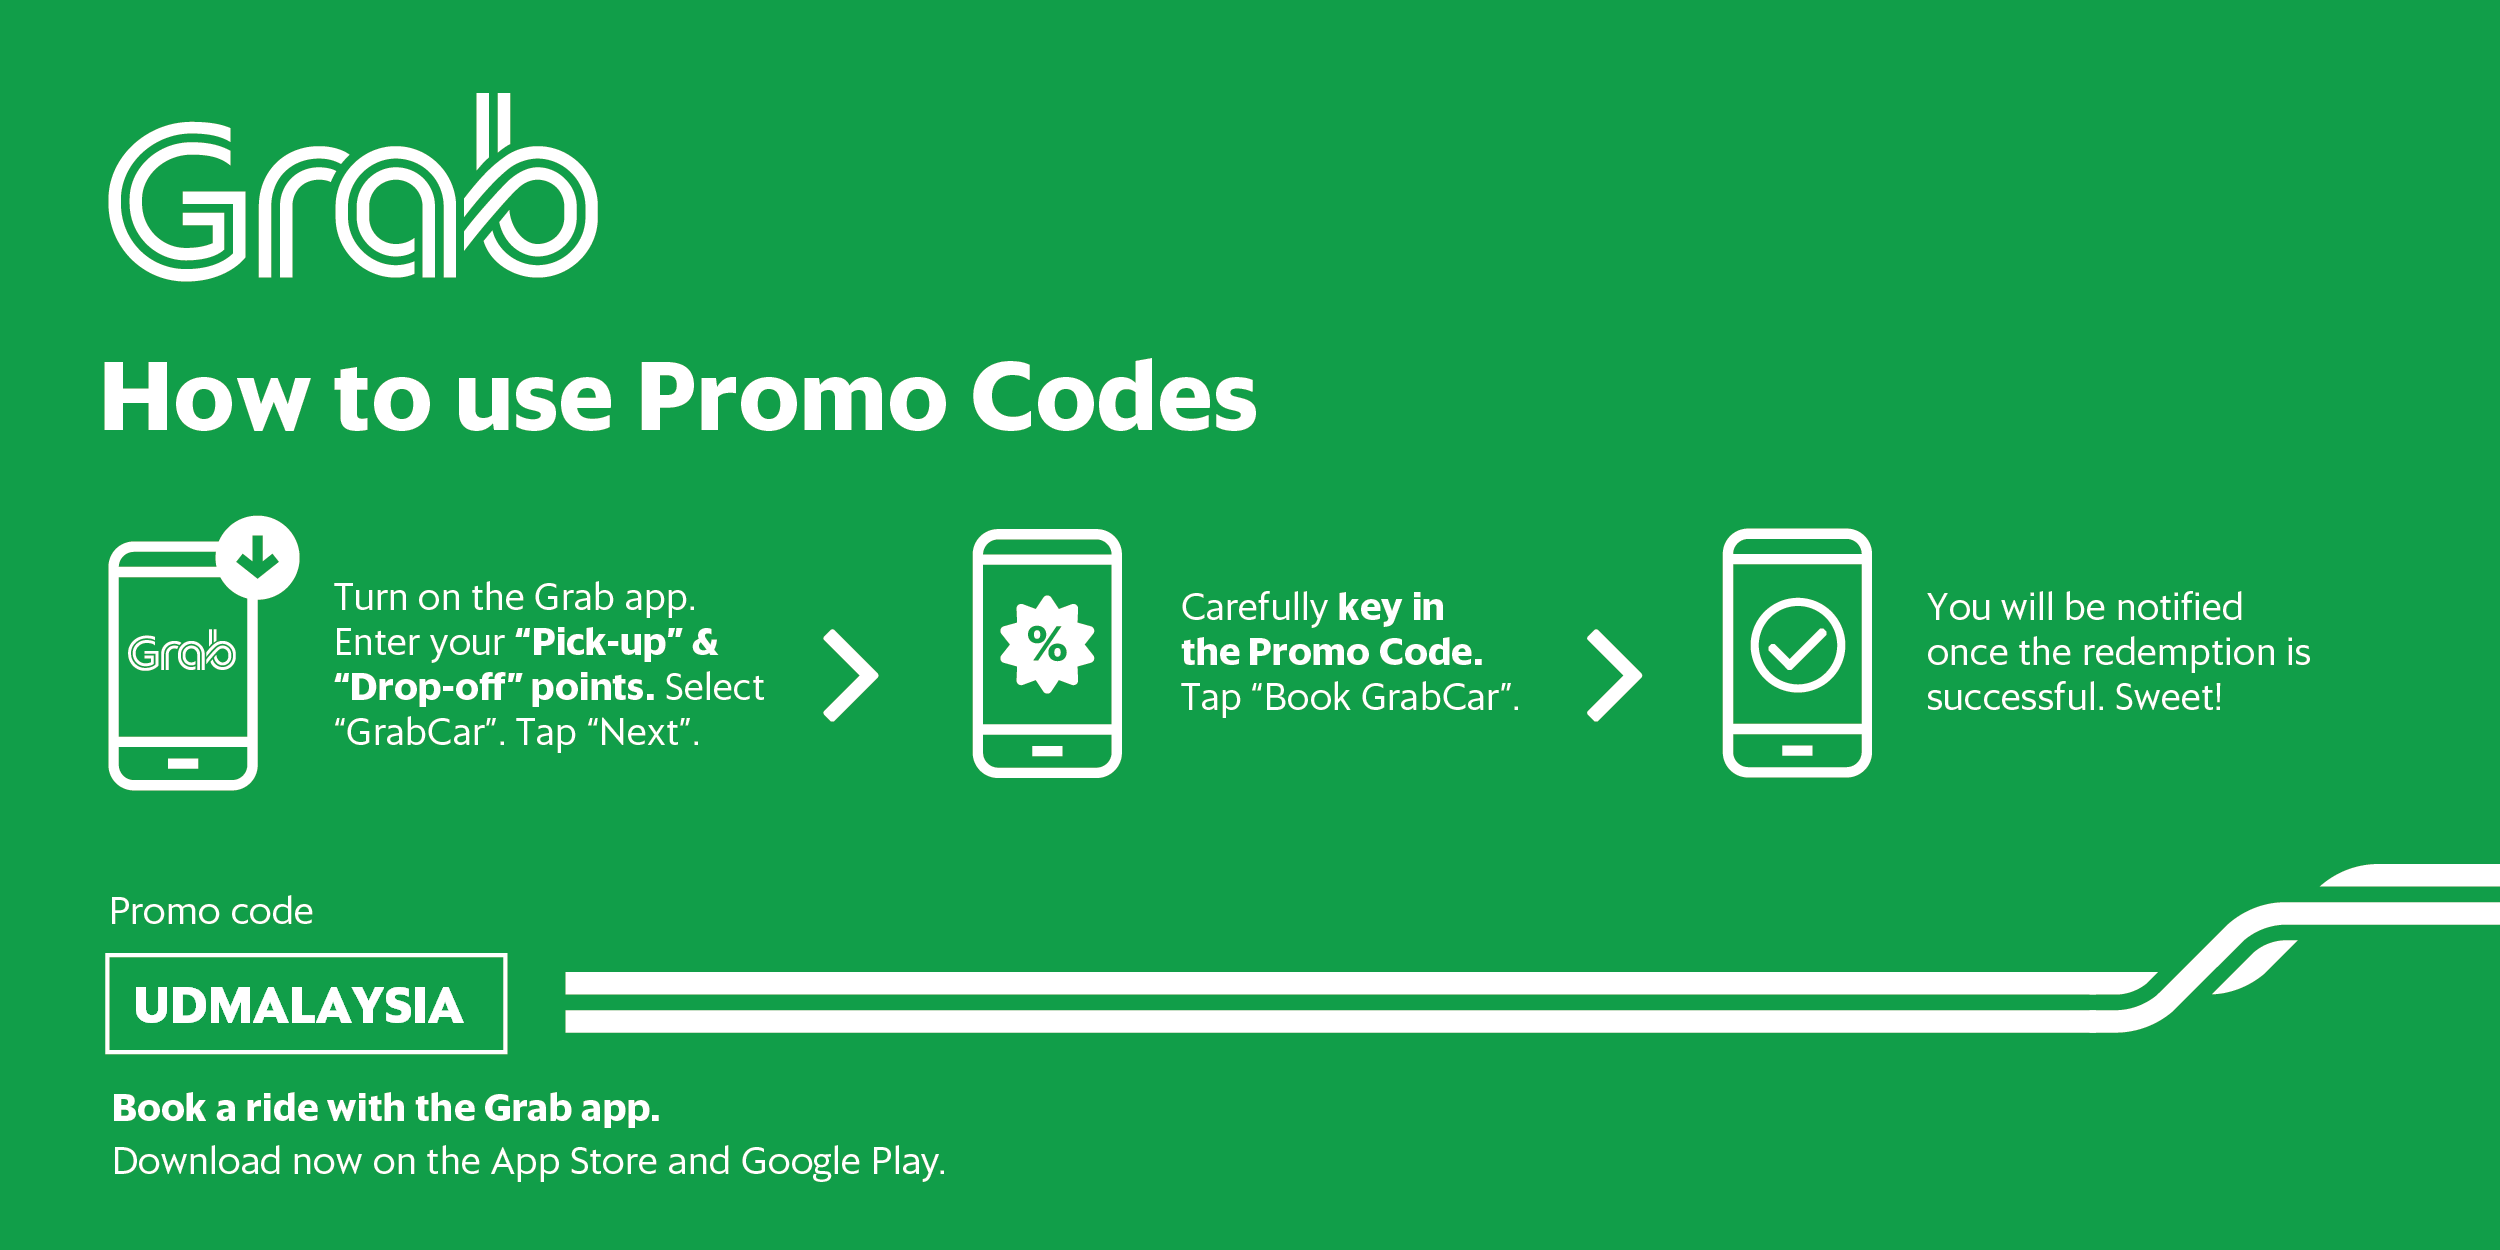 grab-how-to-use-promo-codeudmalaysia-jpeg